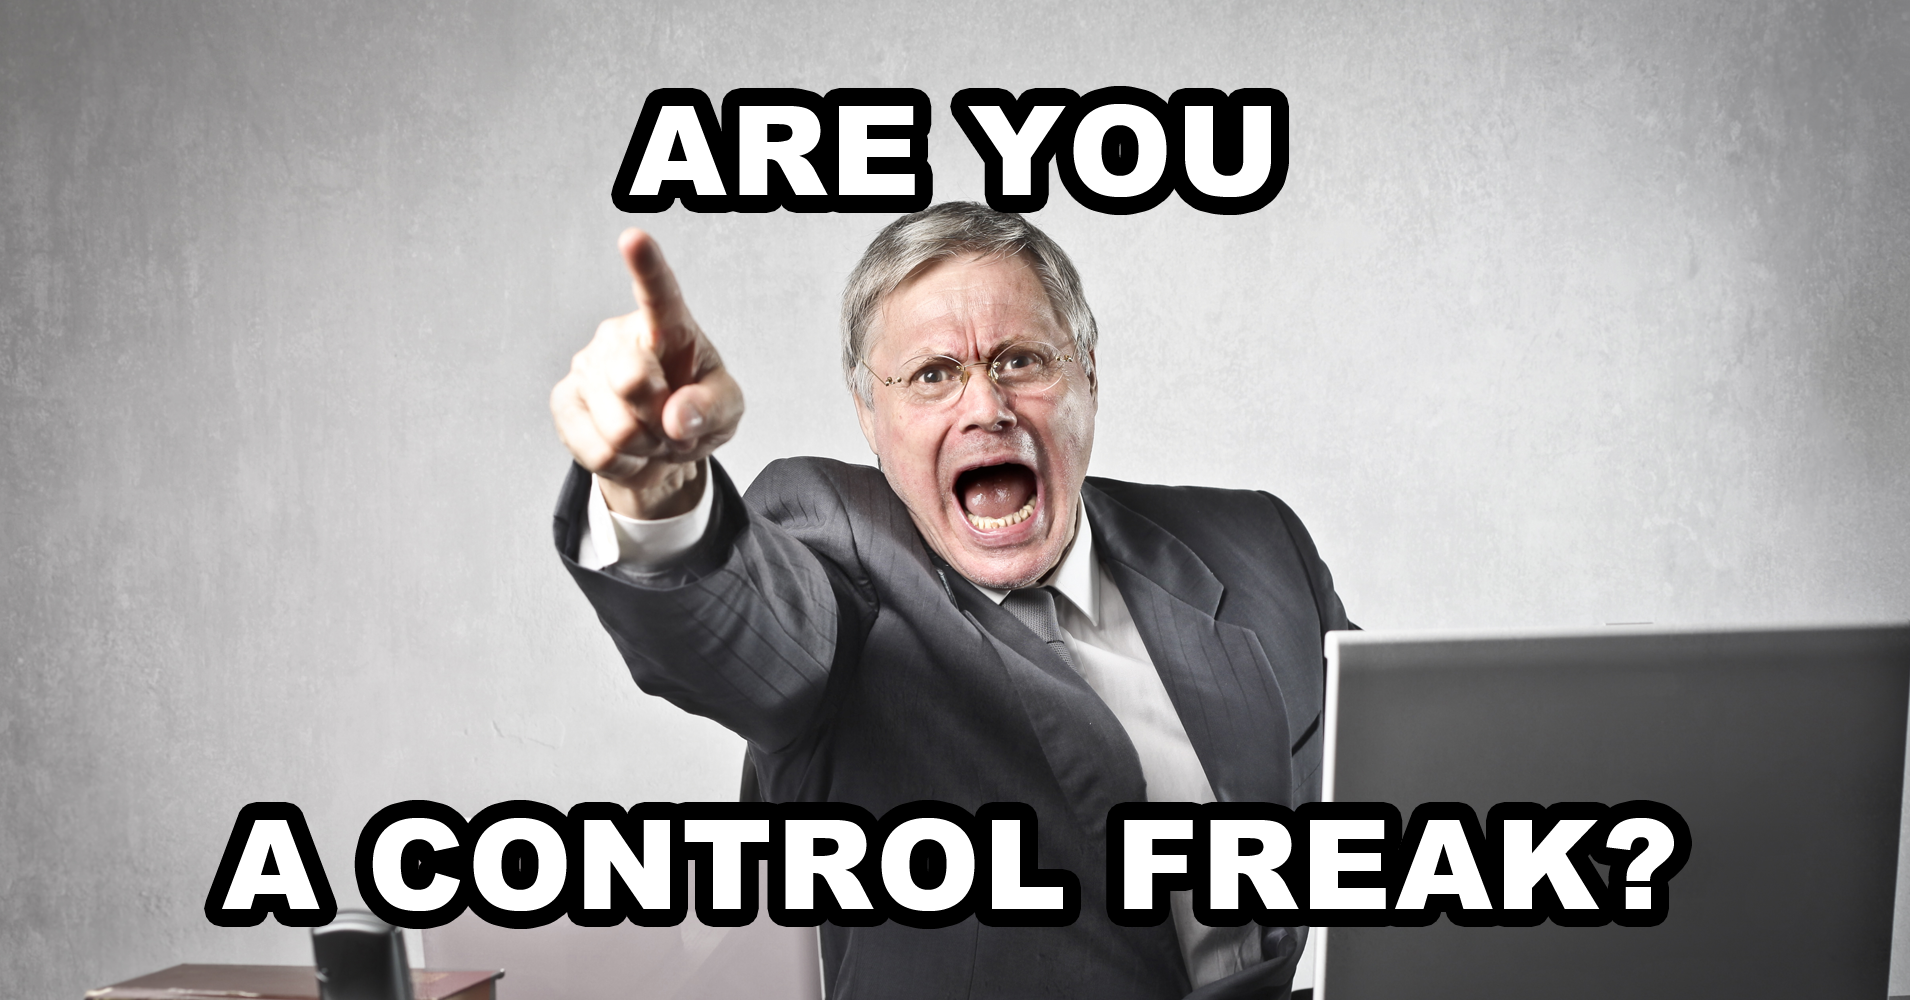 Are you a control freak quiz